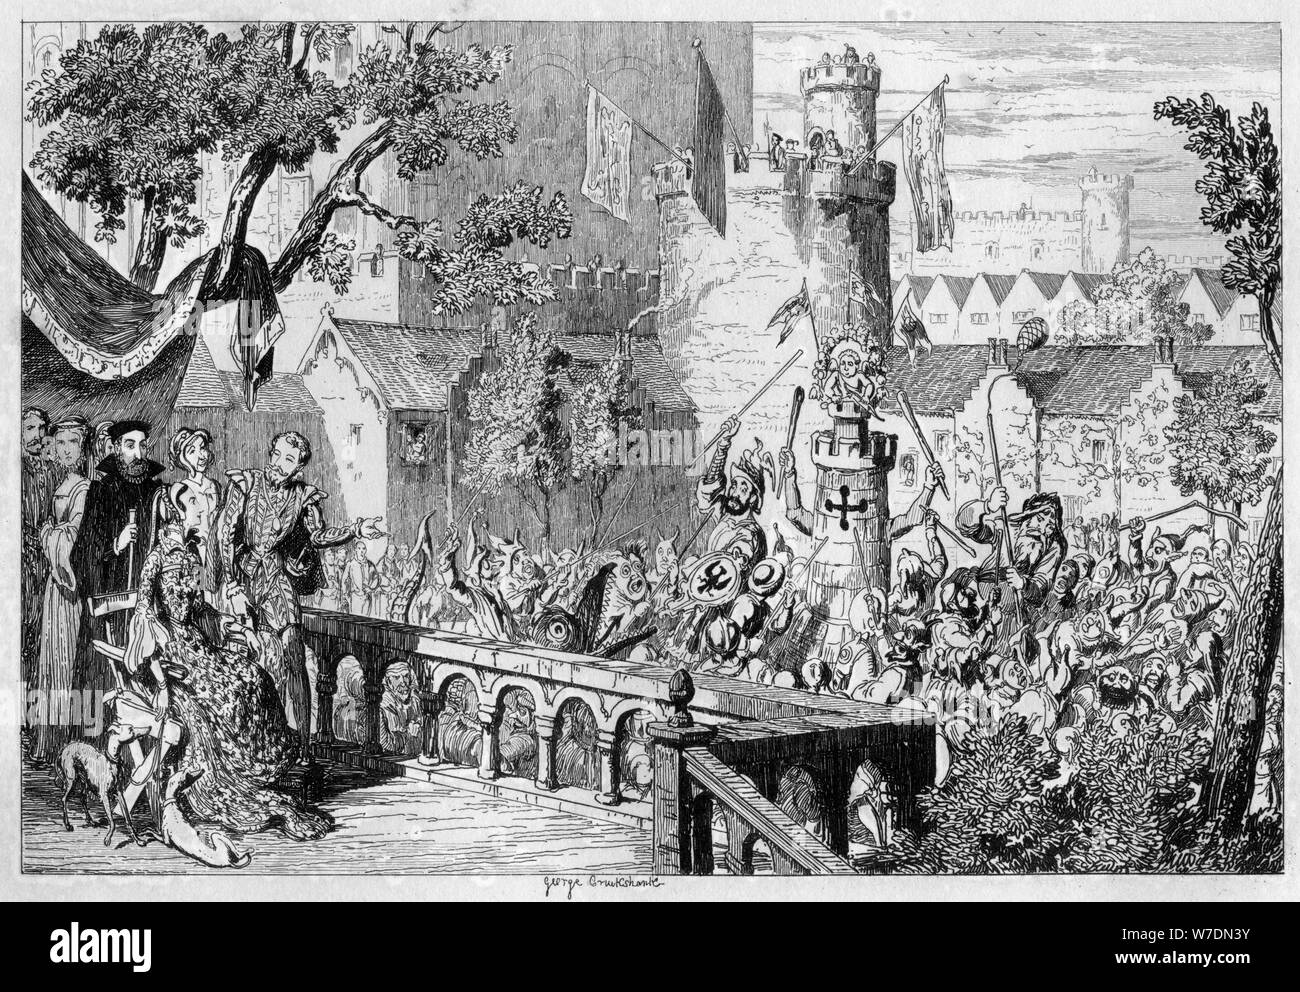 Masque in the palace garden of the Tower of London, 1840.Artist: George Cruikshank Stock Photo